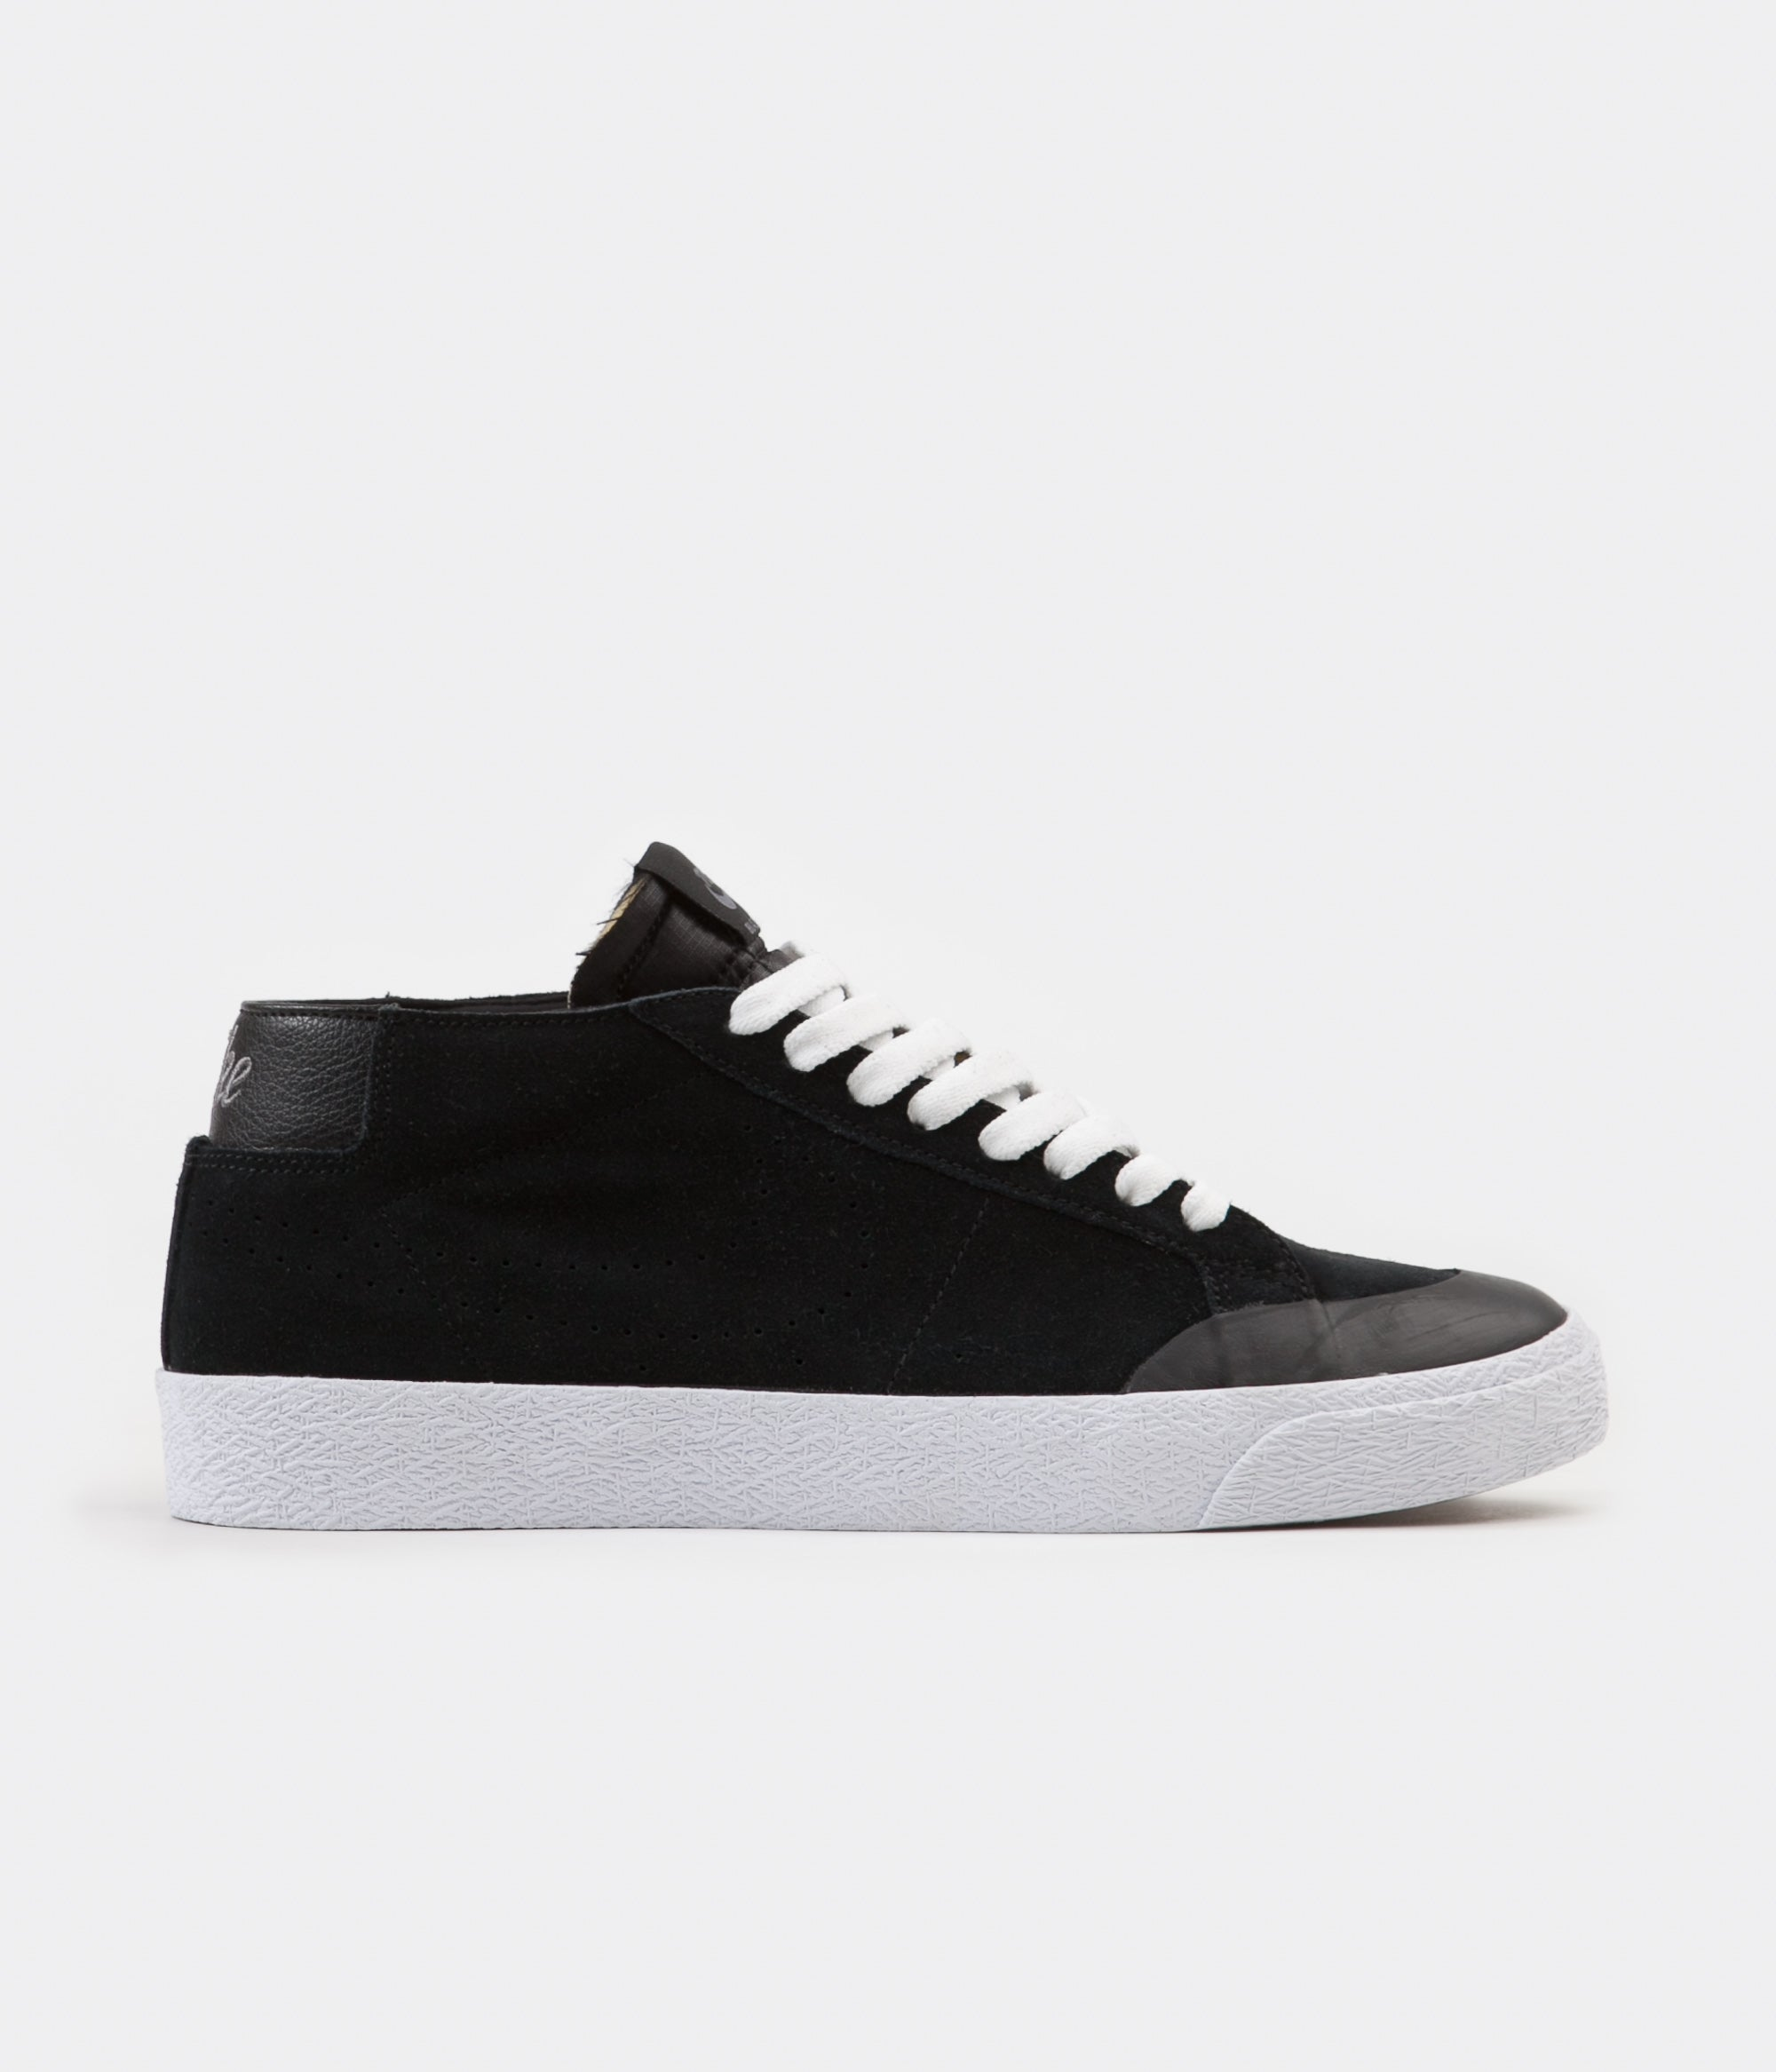 Nike SB Blazer Chukka XT Shoes - Black / Black - Gunsmoke